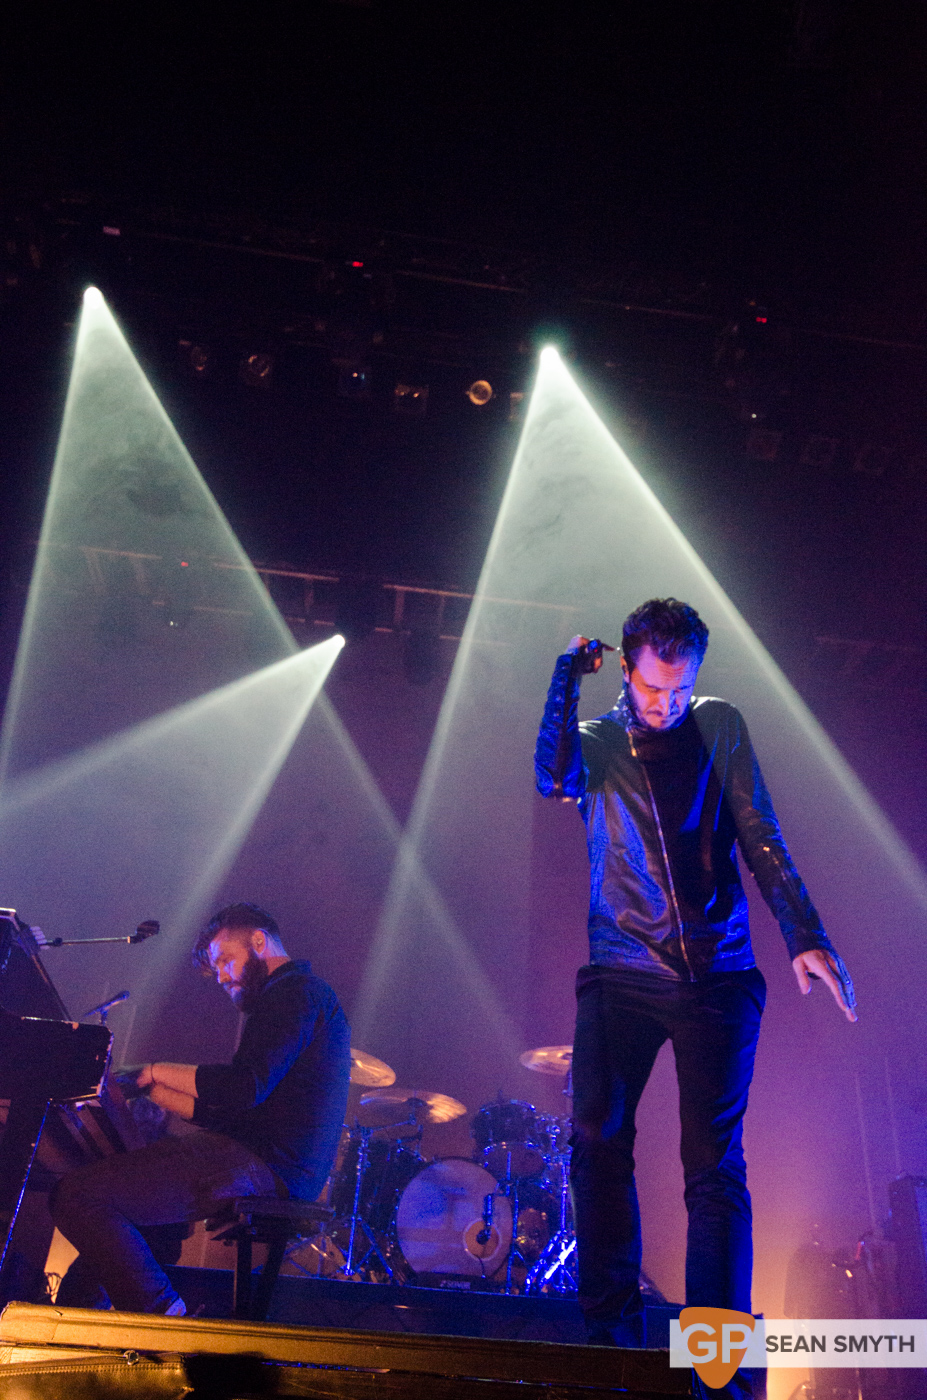 editors-at-the-olympia-theatre-by-sean-smyth-10-10-15-1-of-28_21902550148_o